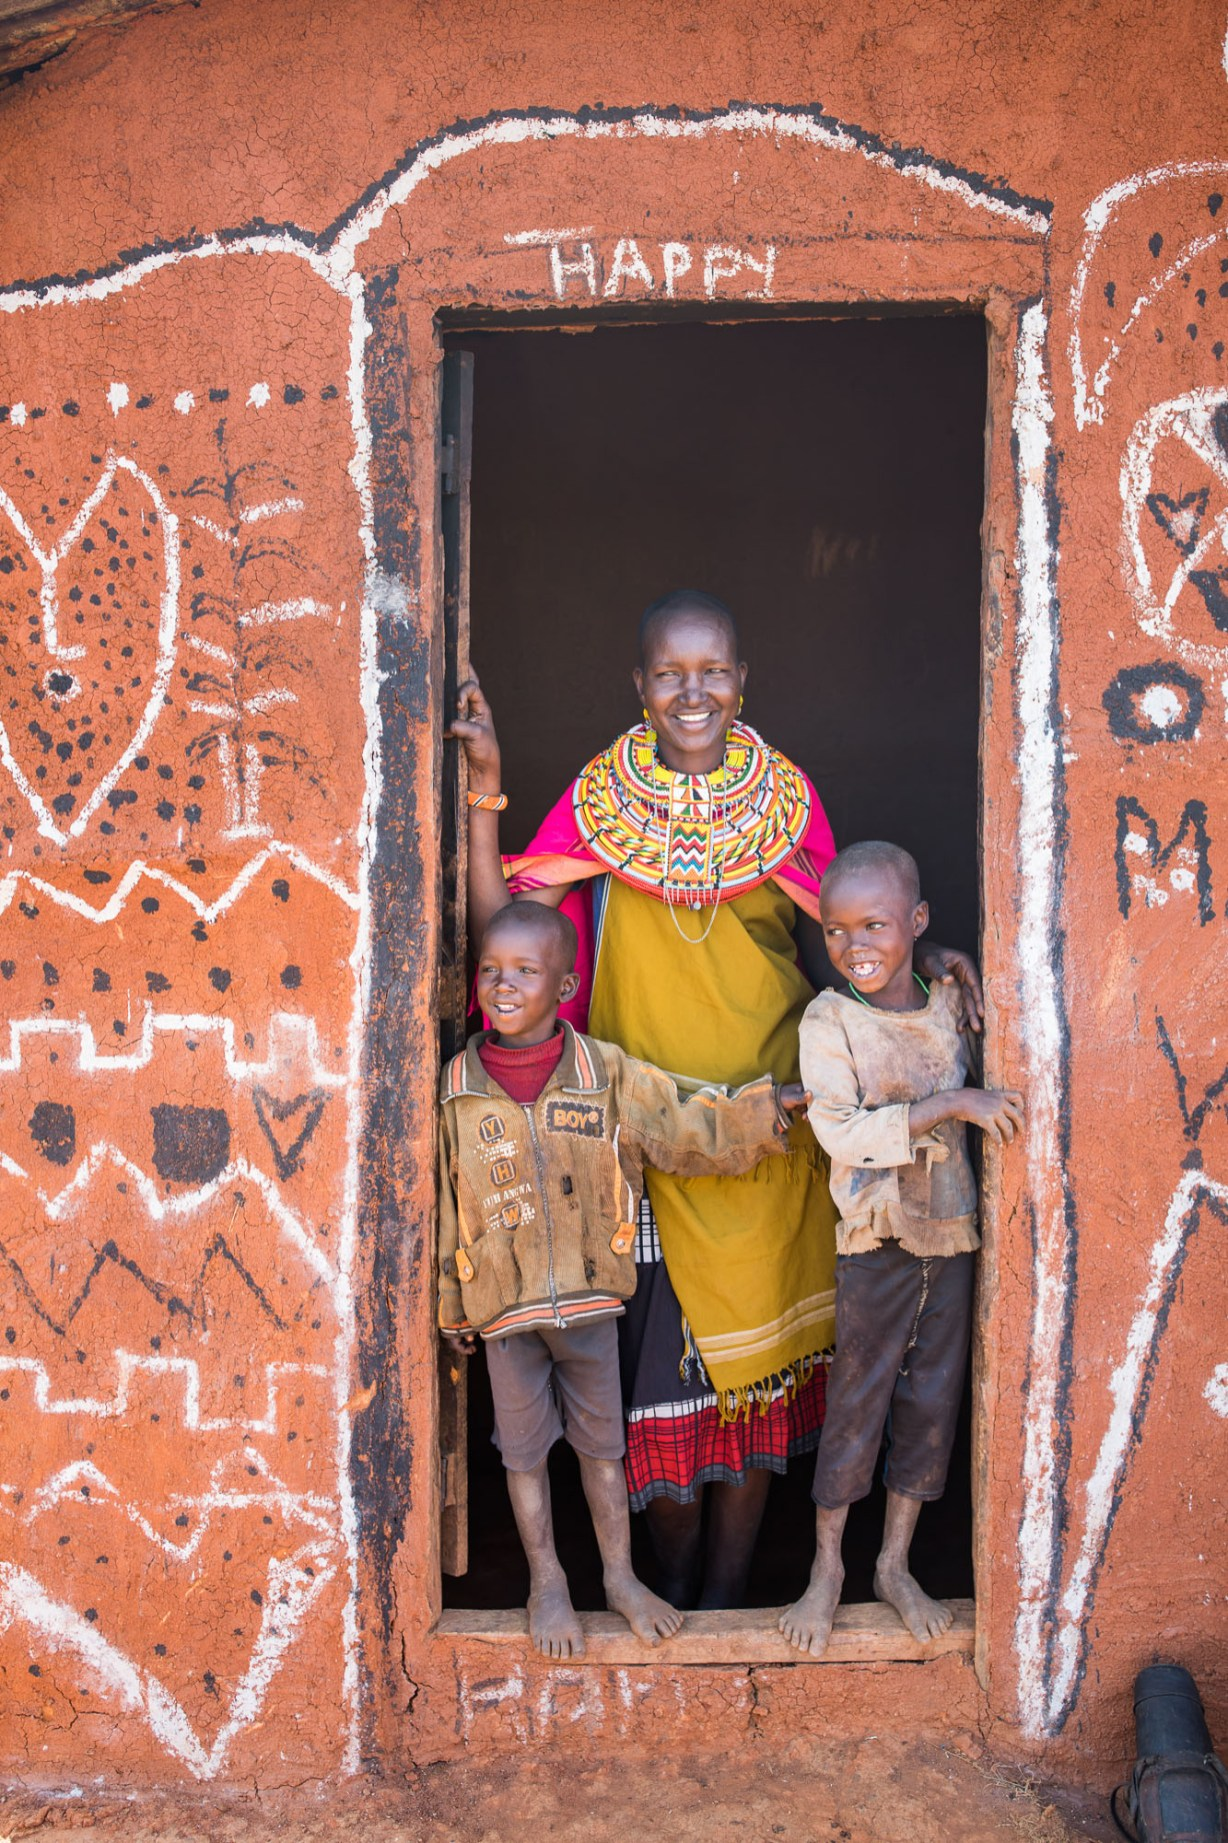 A family stands in the doorway of their home in Samburu County, Kenya.